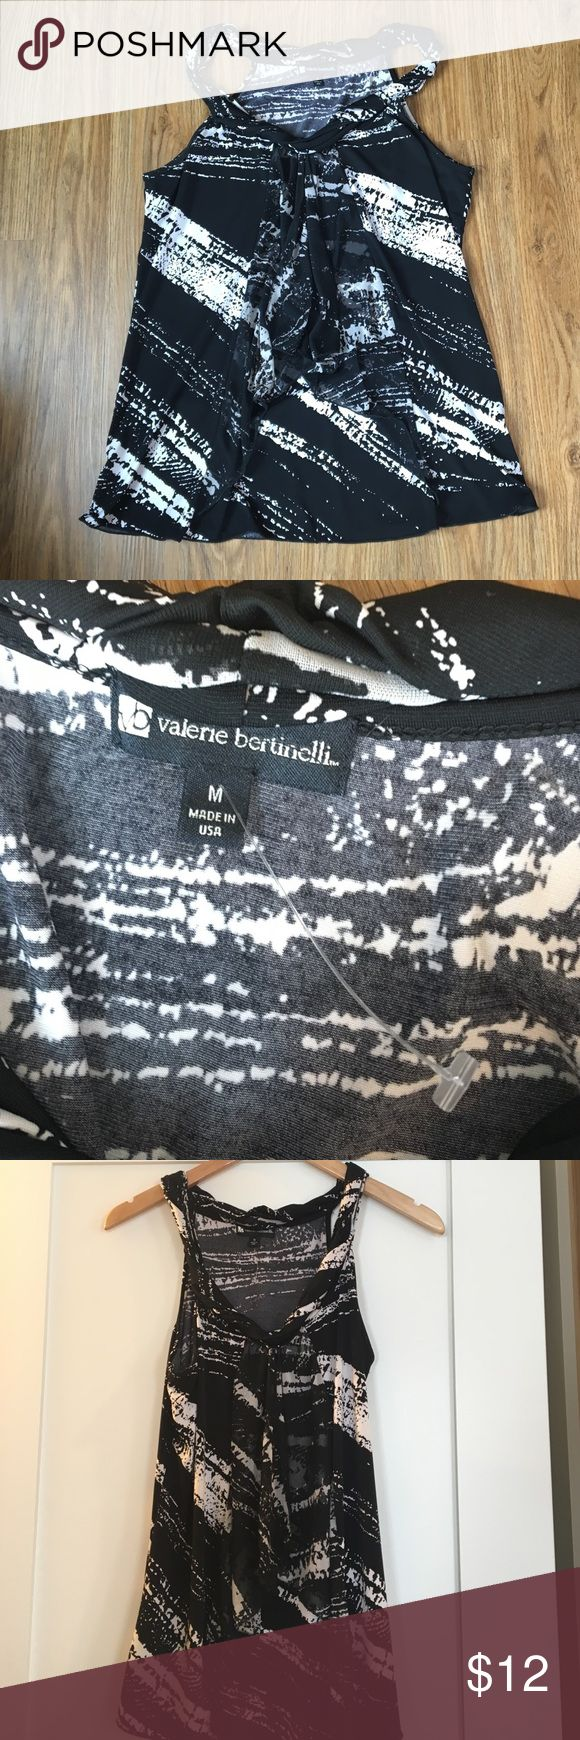 NWOT Blouse New without tags, Black and white sleeveless blouse. Tops